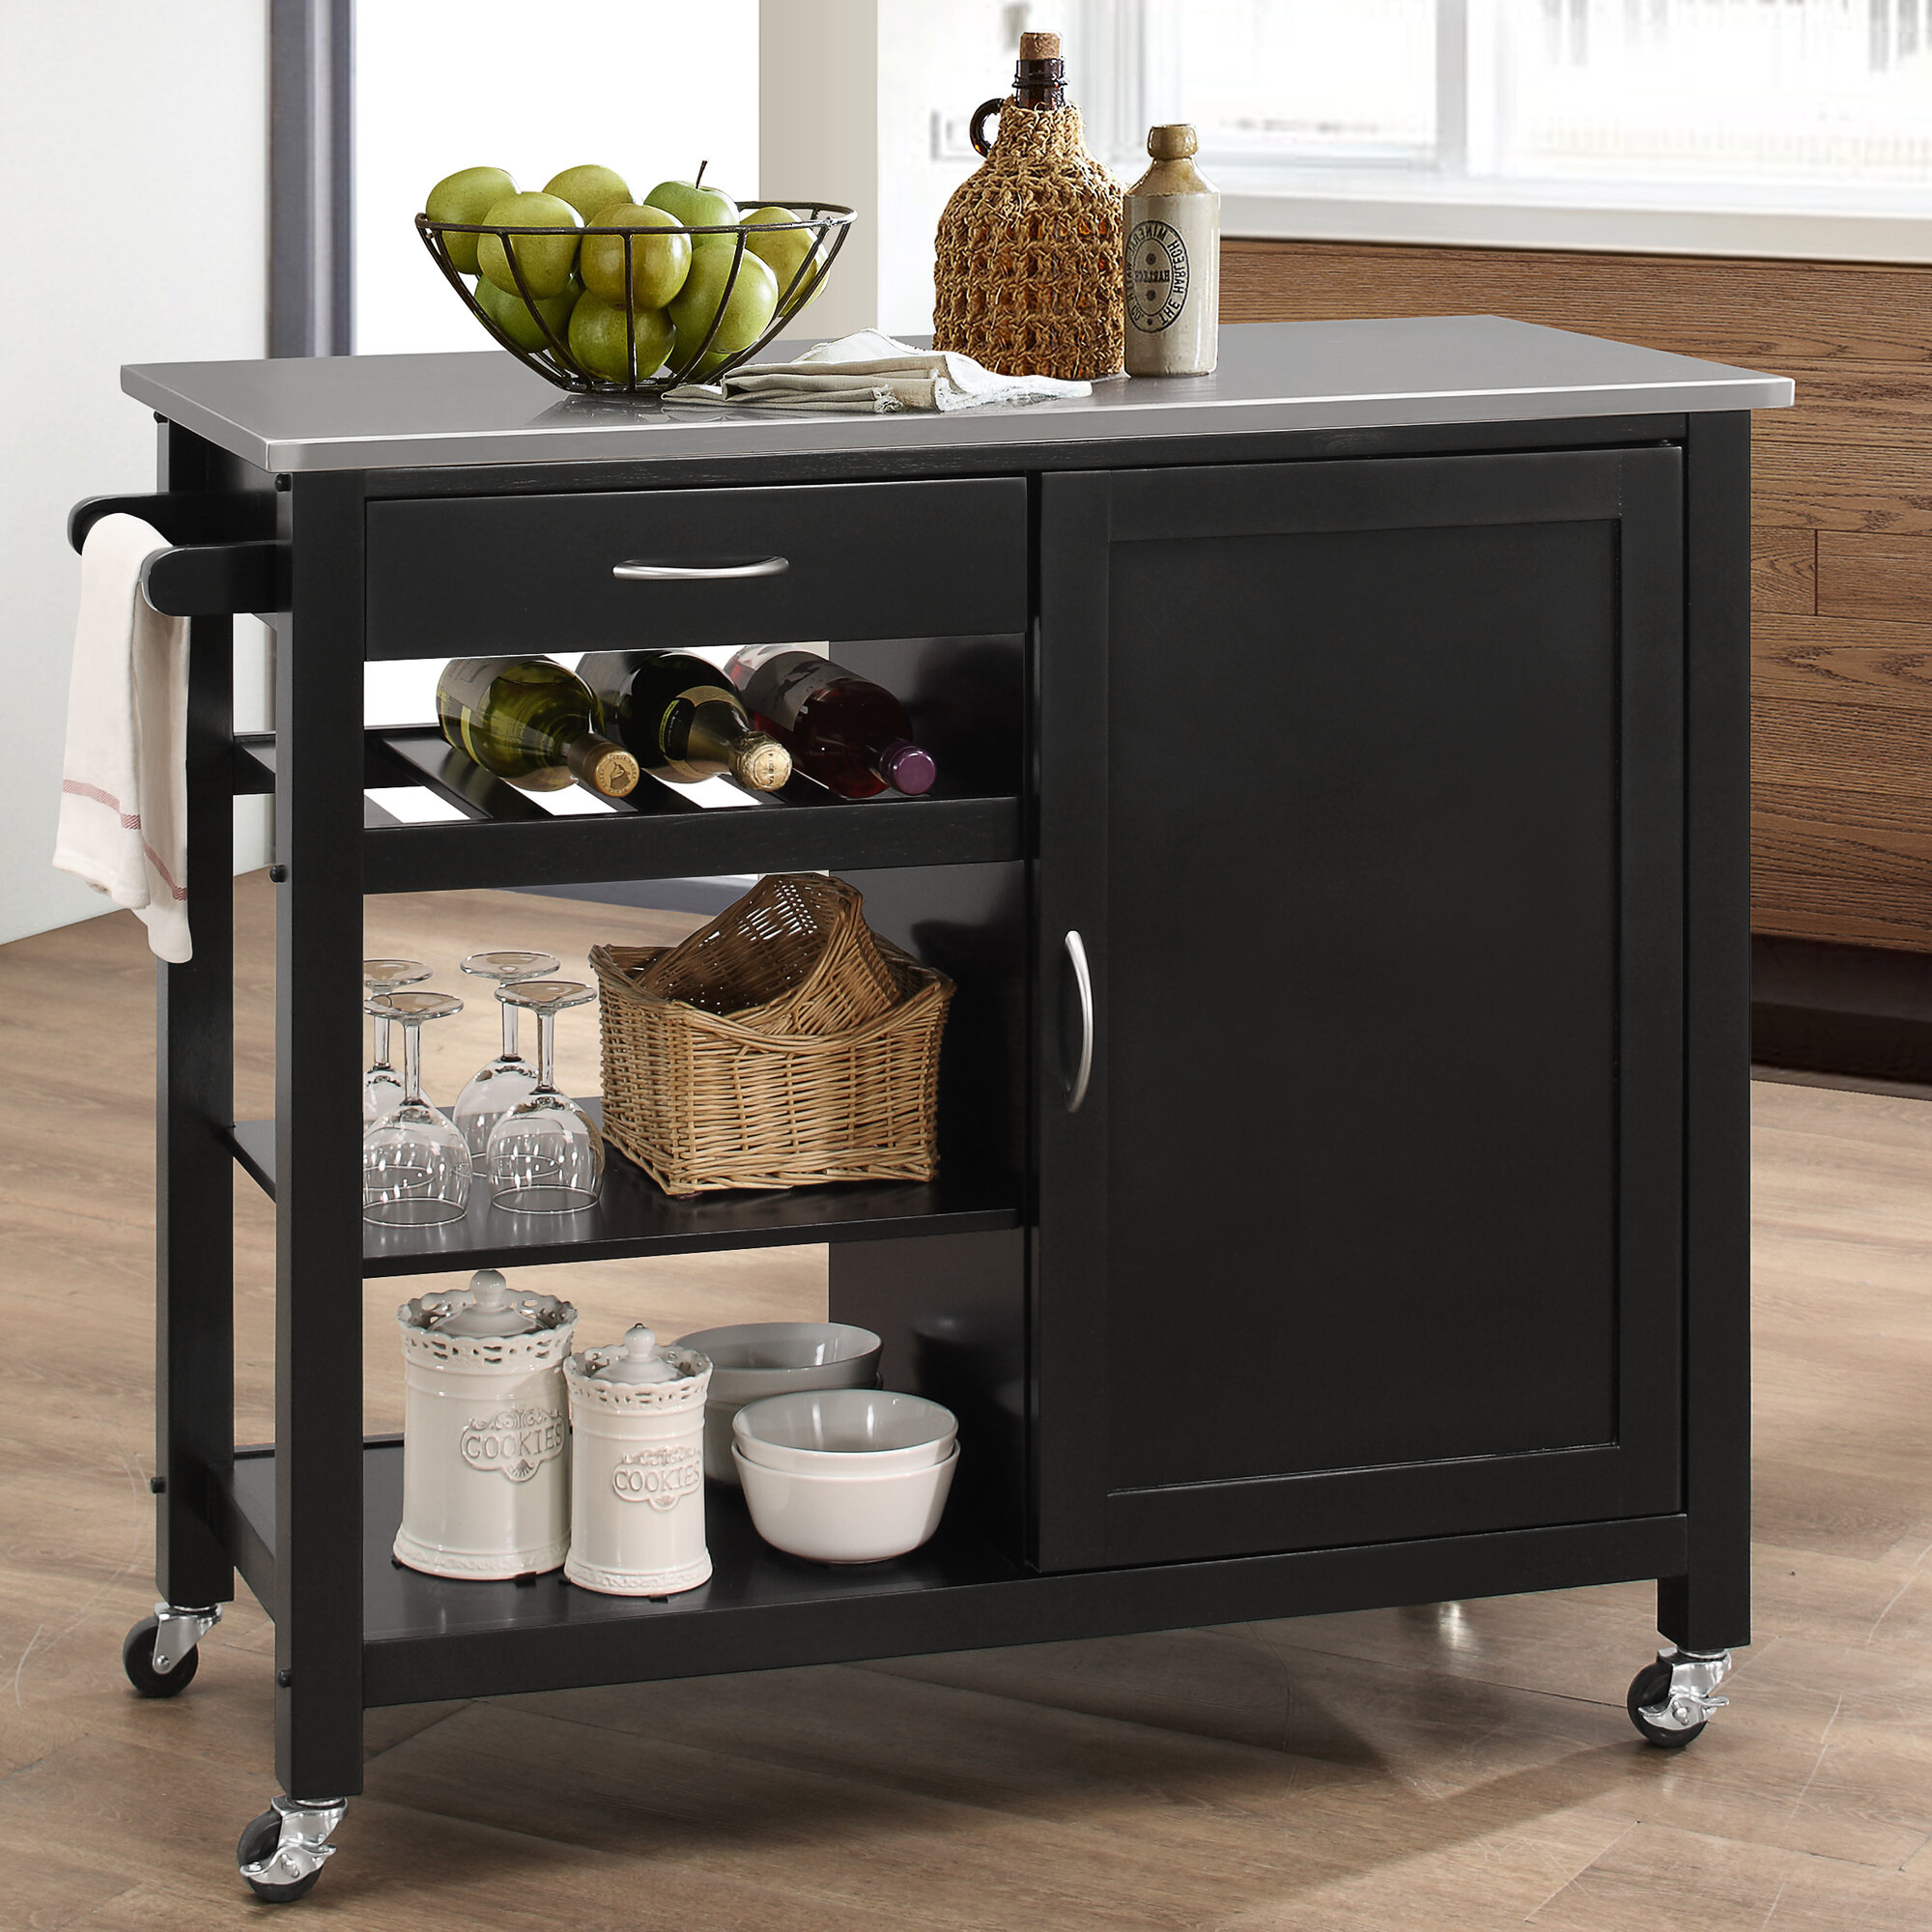 Details about Latitude Run Monongah Kitchen Cart with Stainless Steel Top